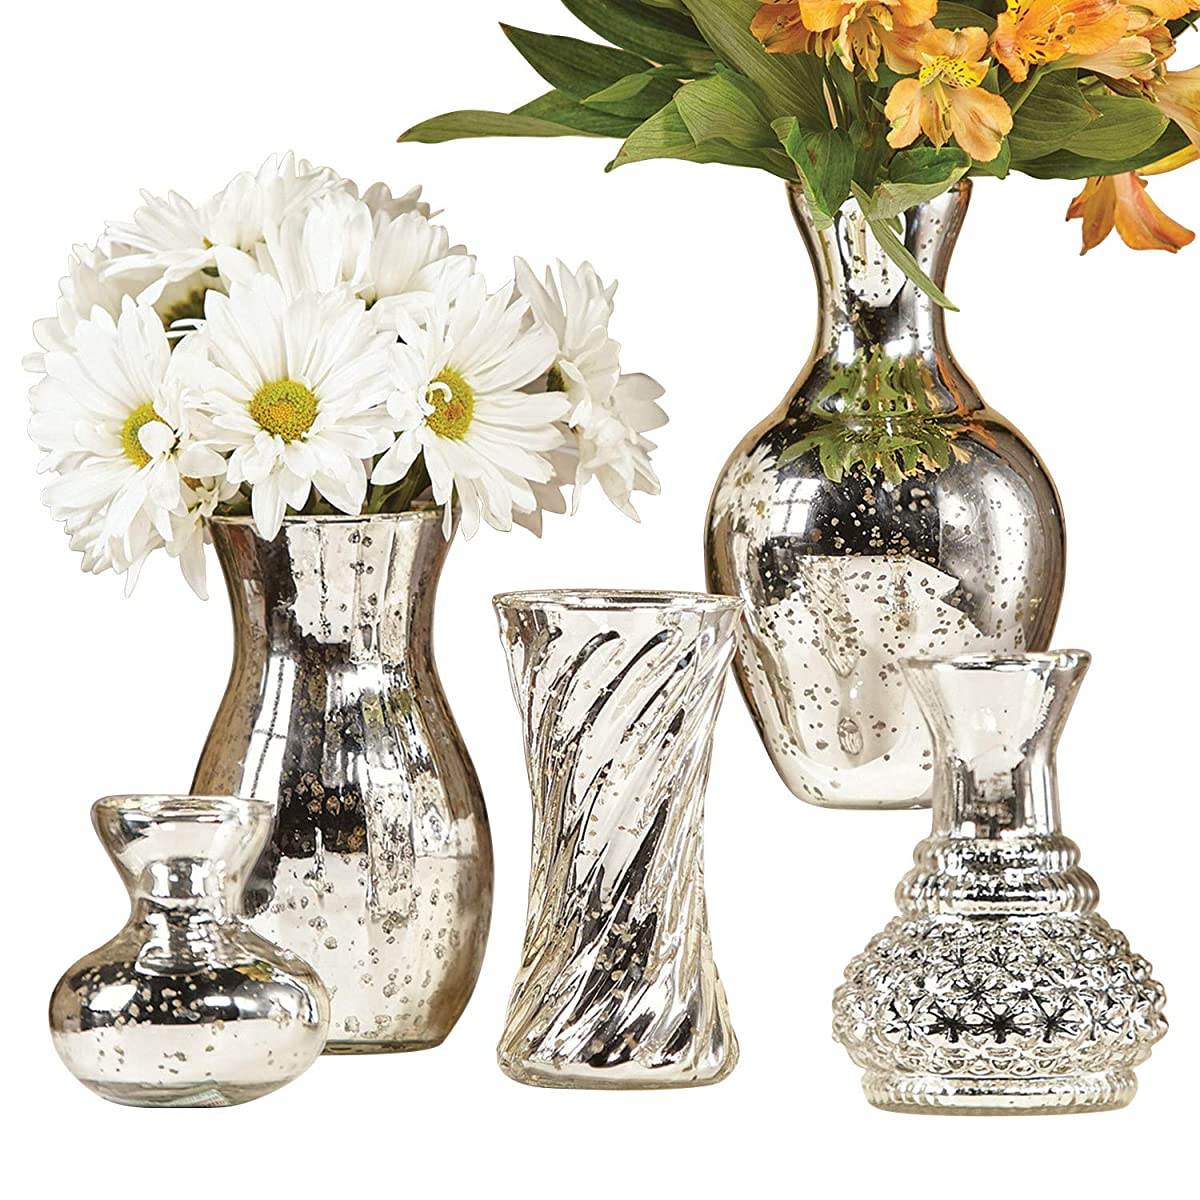 """ART & ARTIFACT 5 Piece Mercury Glass Flower Vase Set - Silver Finish - Different Shapes and Sizes 4"""" Bud Vase to 8"""" Tall"""